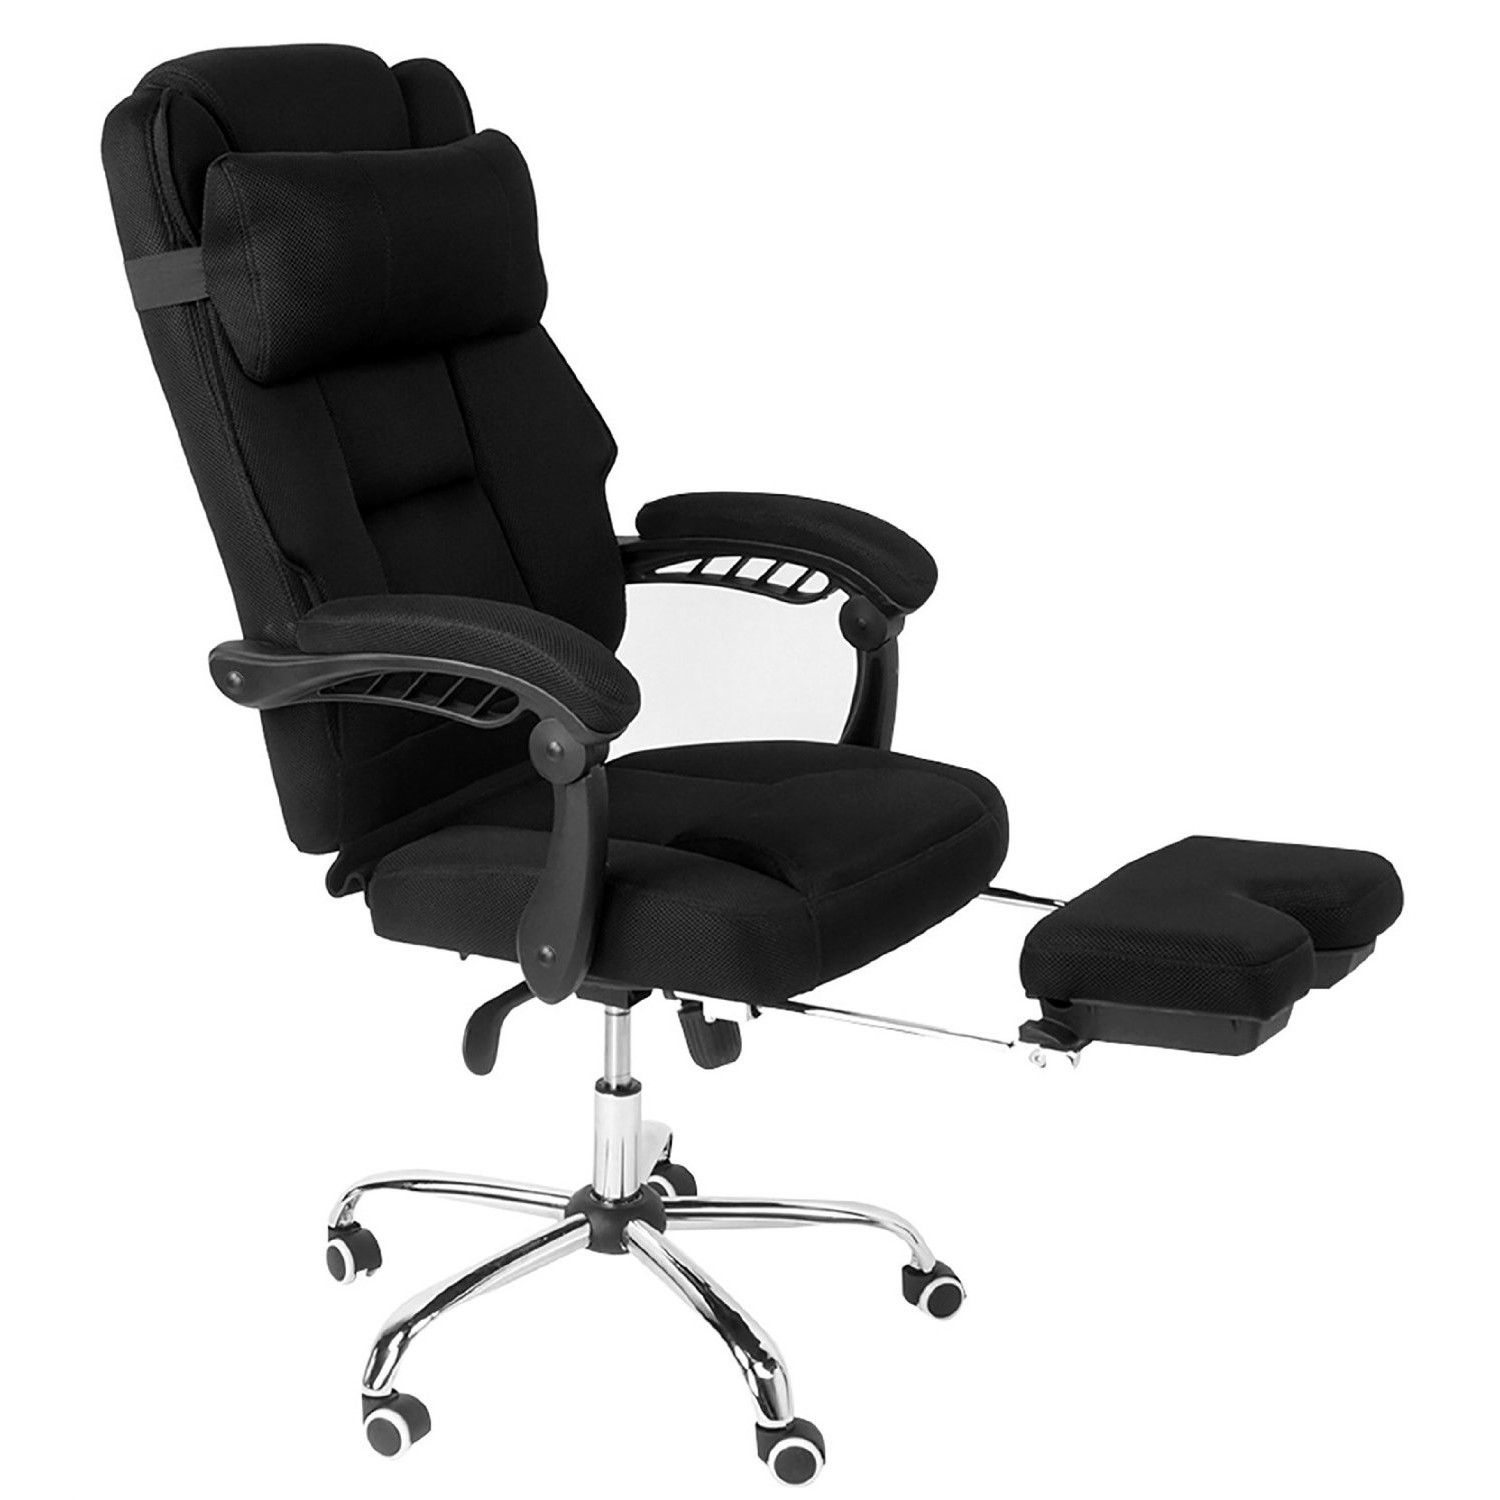 office of full relaxing homebase computer chairs comfortable your for depot back ergonomic size home good furniture education high chair support